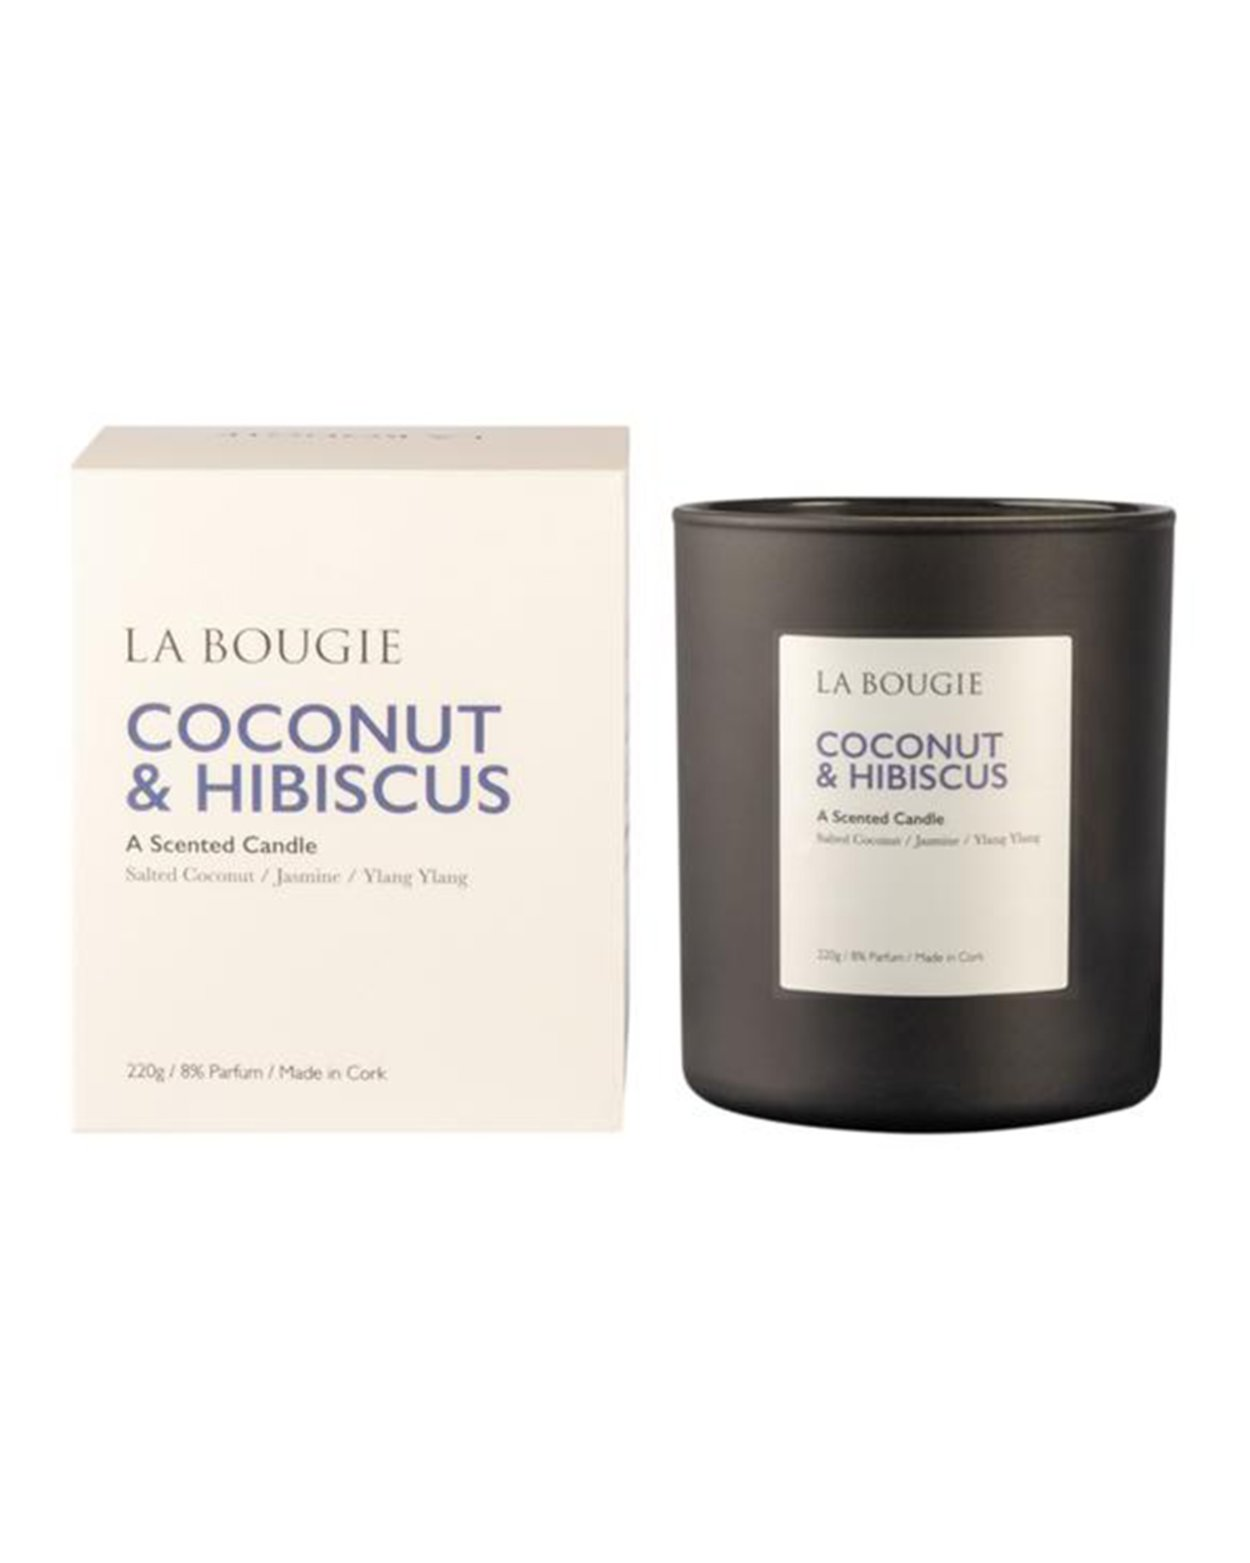 Coconut & Hibiscus Scented Candle